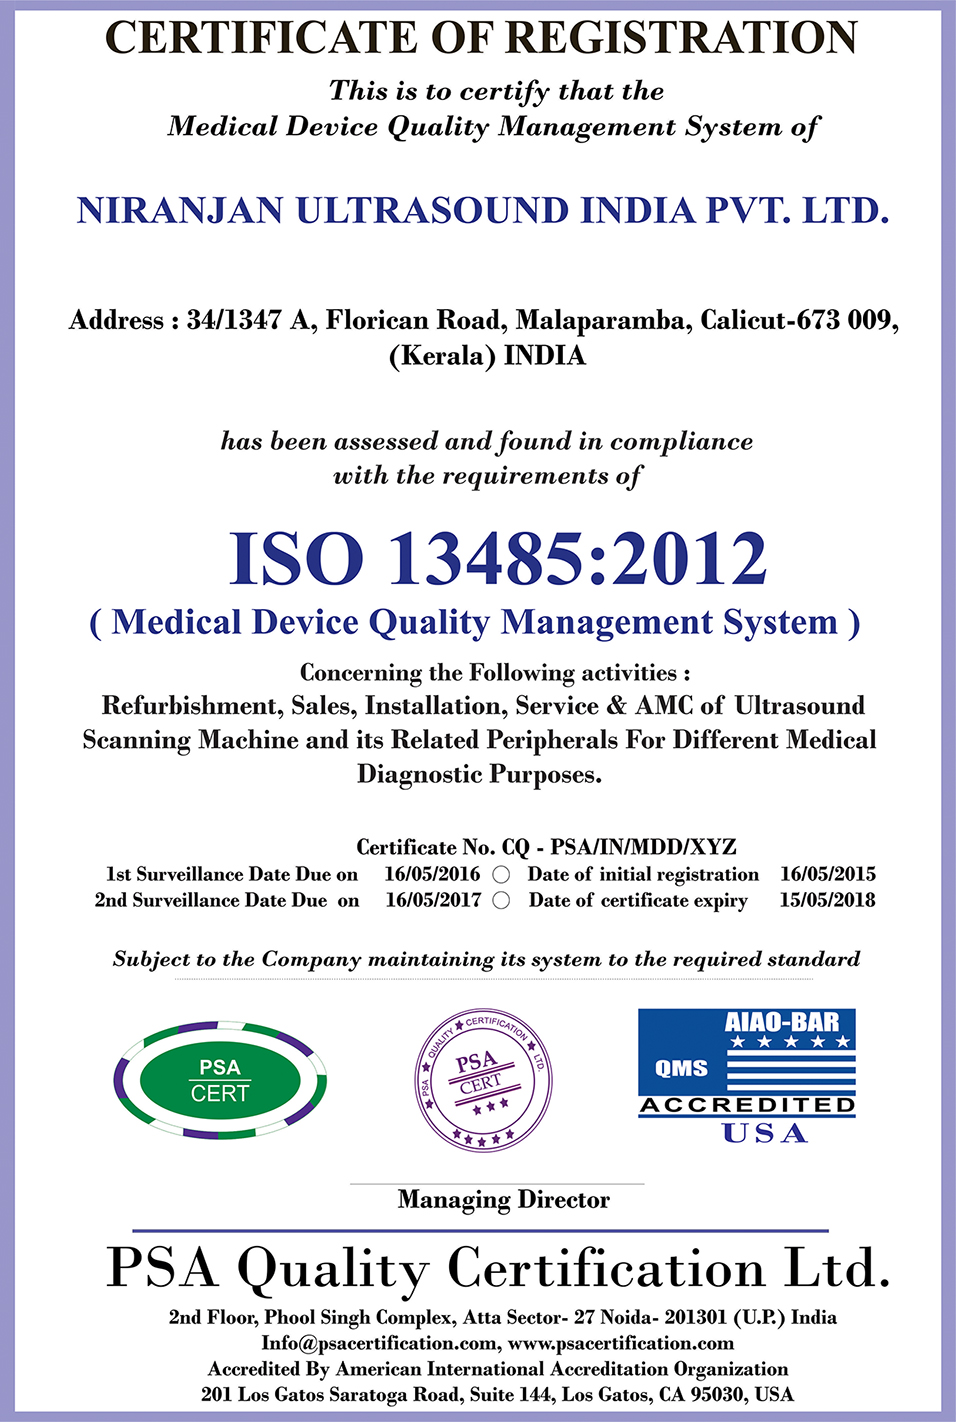 Niranjan Ultrasound India Iso Certificate 134852012 Quality